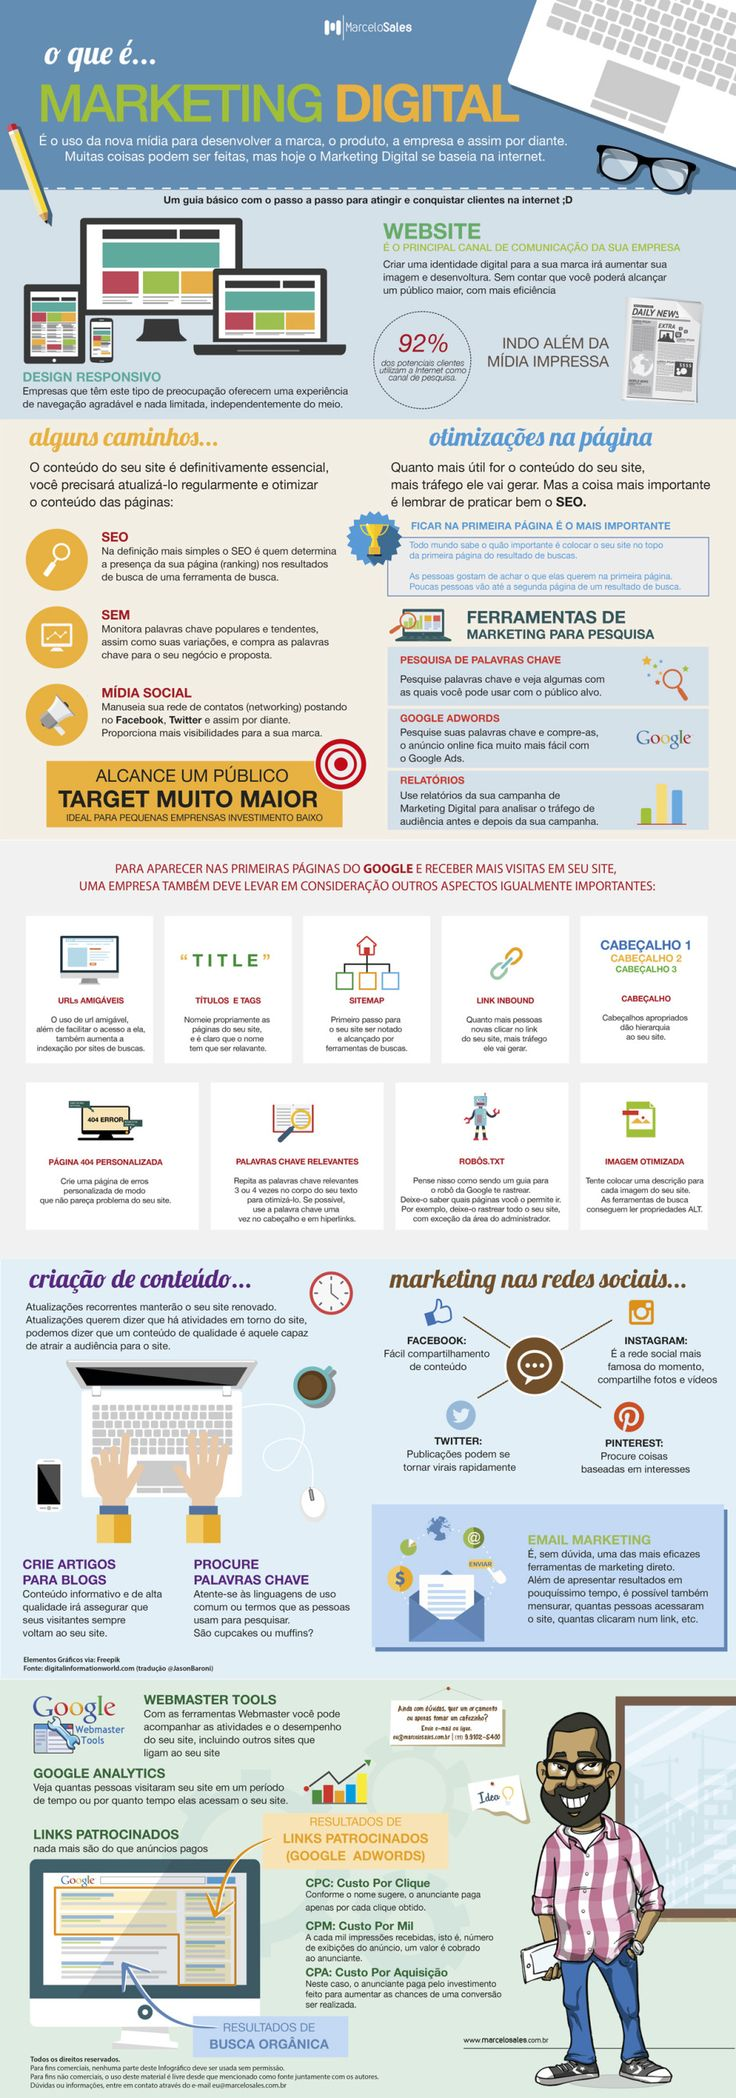 Infográfico o que é Marketing Digital